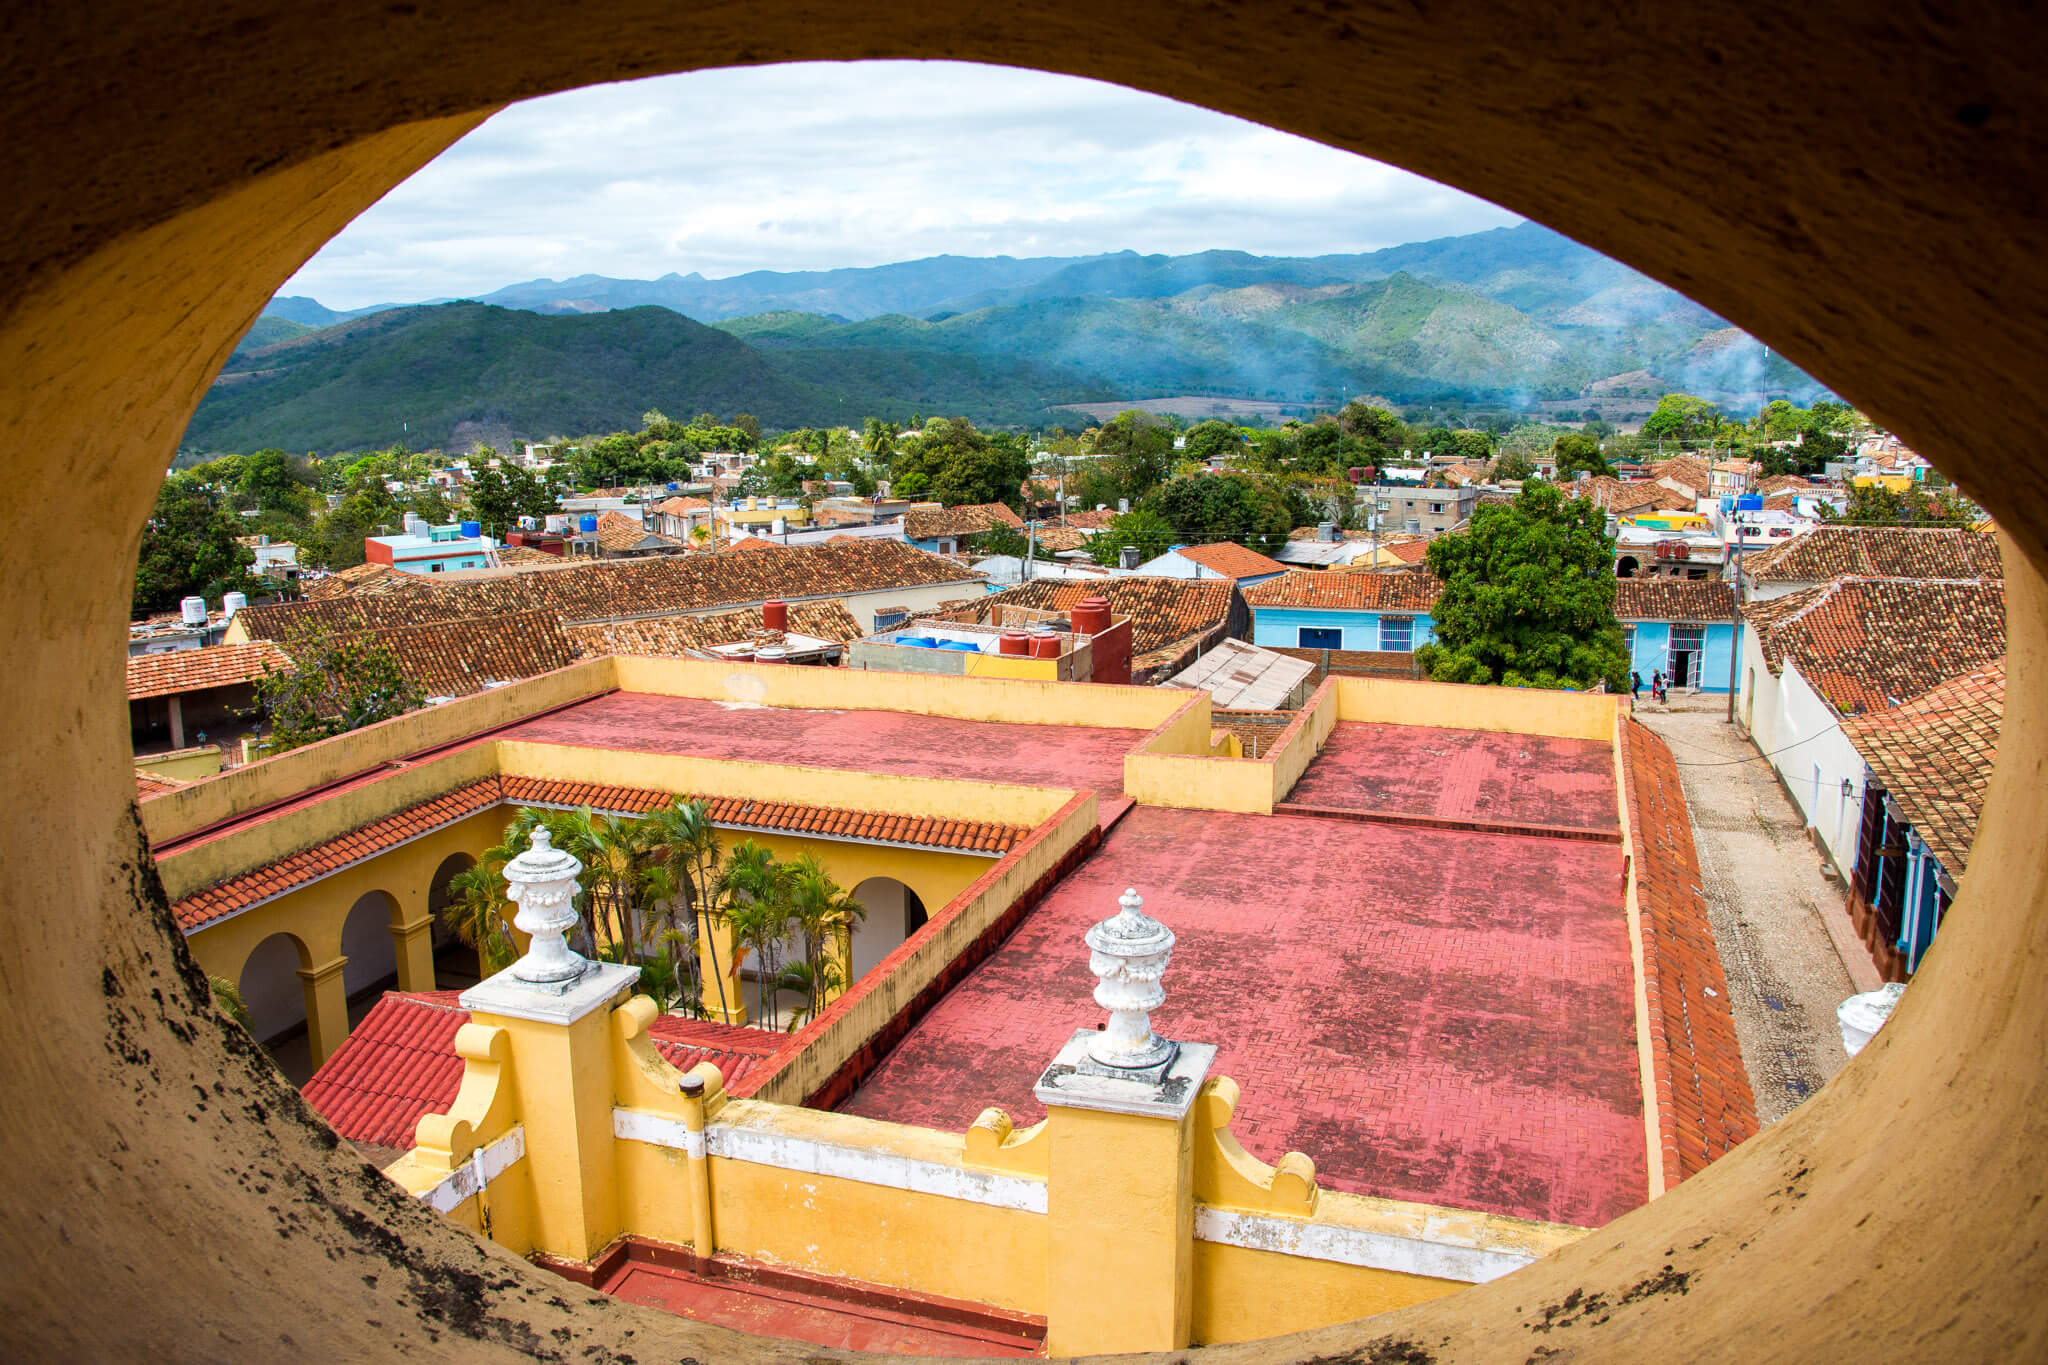 The rooftops of Trinidad, Cuba